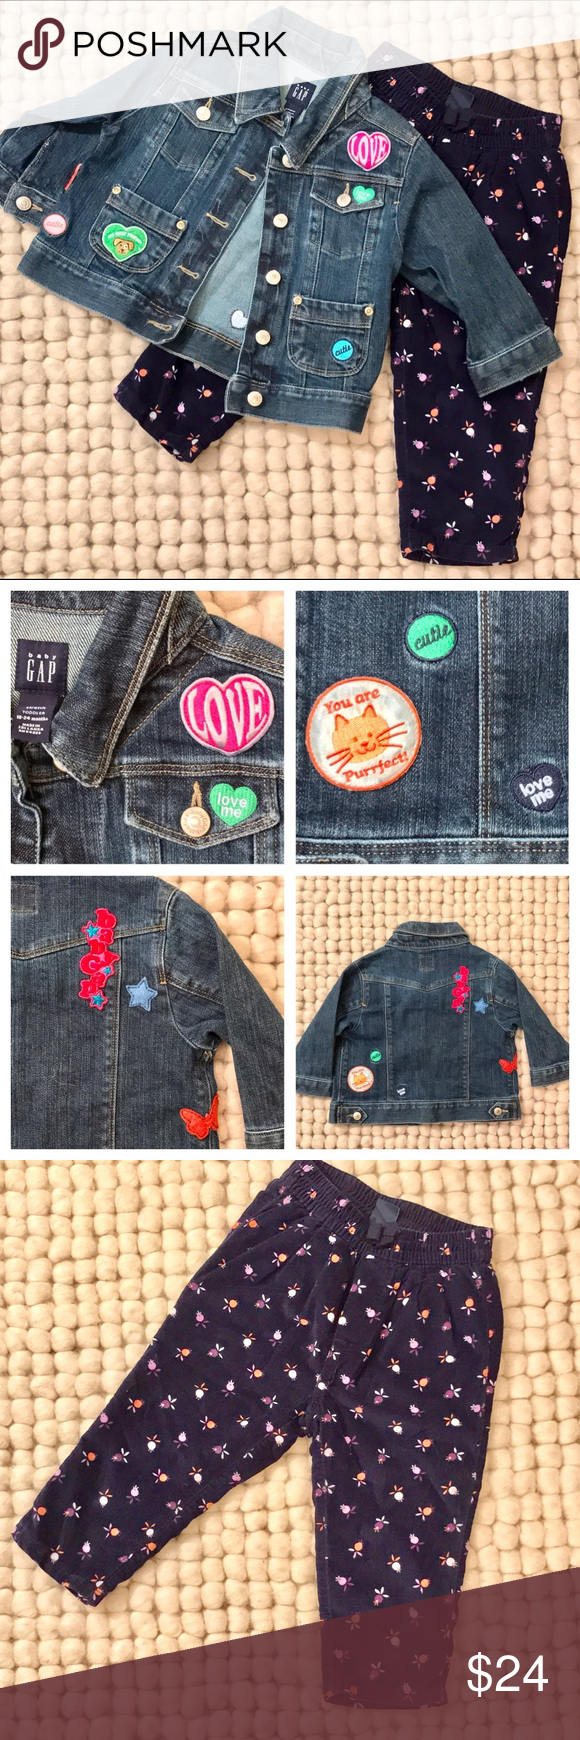 Selling this Baby GAP Jean Jacket and Cords Sz. 18-24mon on Poshmark! My username is: onlyonpoint. #shopmycloset #poshmark #fashion #shopping #style #forsale #GAP #Other